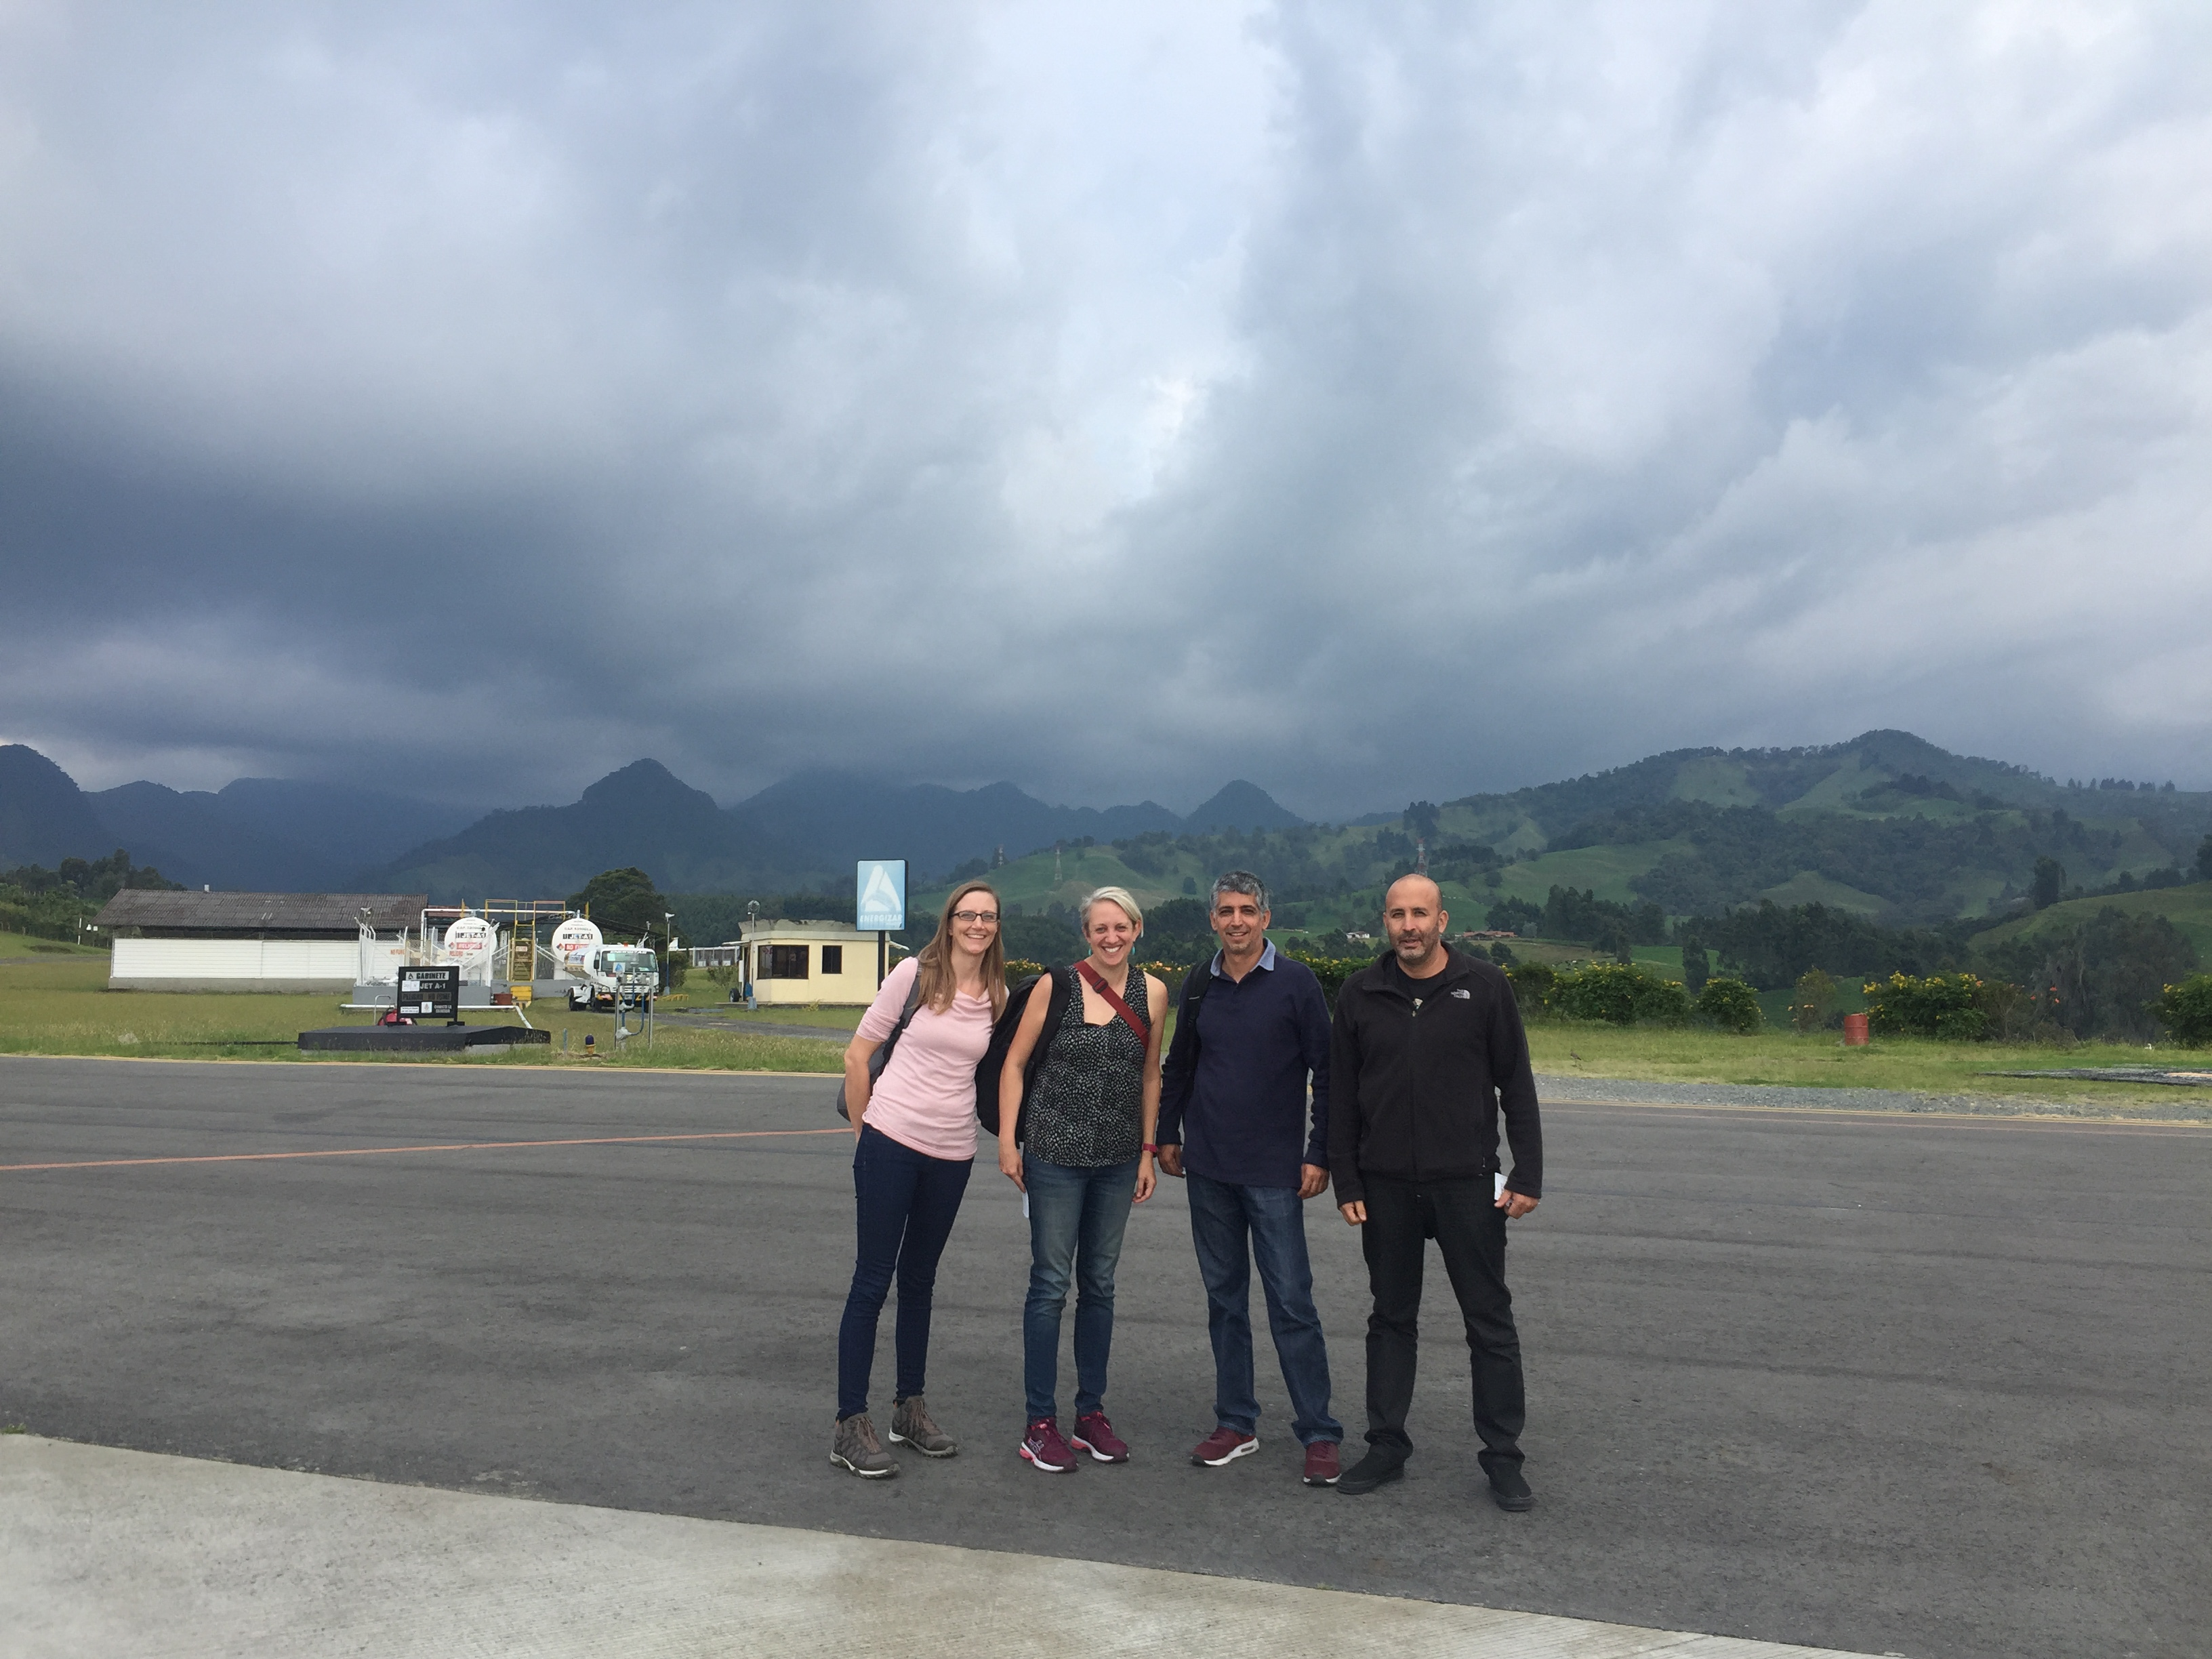 Lara, Christy, Gaspar, and Agustin arrive in Colombia to prepare for the MUSICA